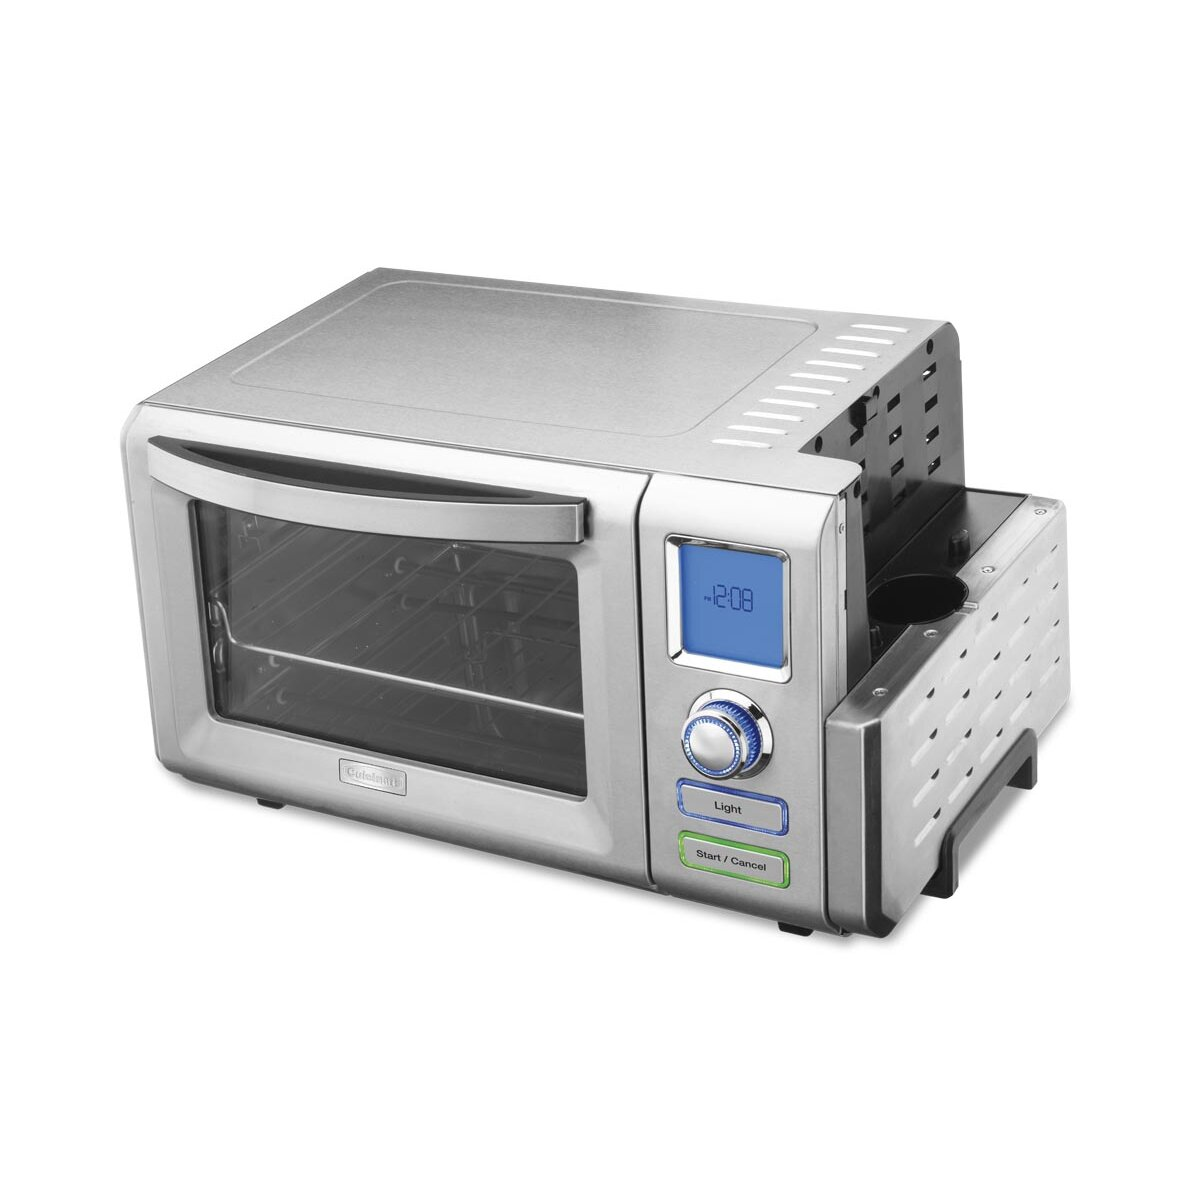 Countertop Steam Oven Reviews : ... Cubic Foot Combo Steam and Convection Oven & Reviews Wayfair